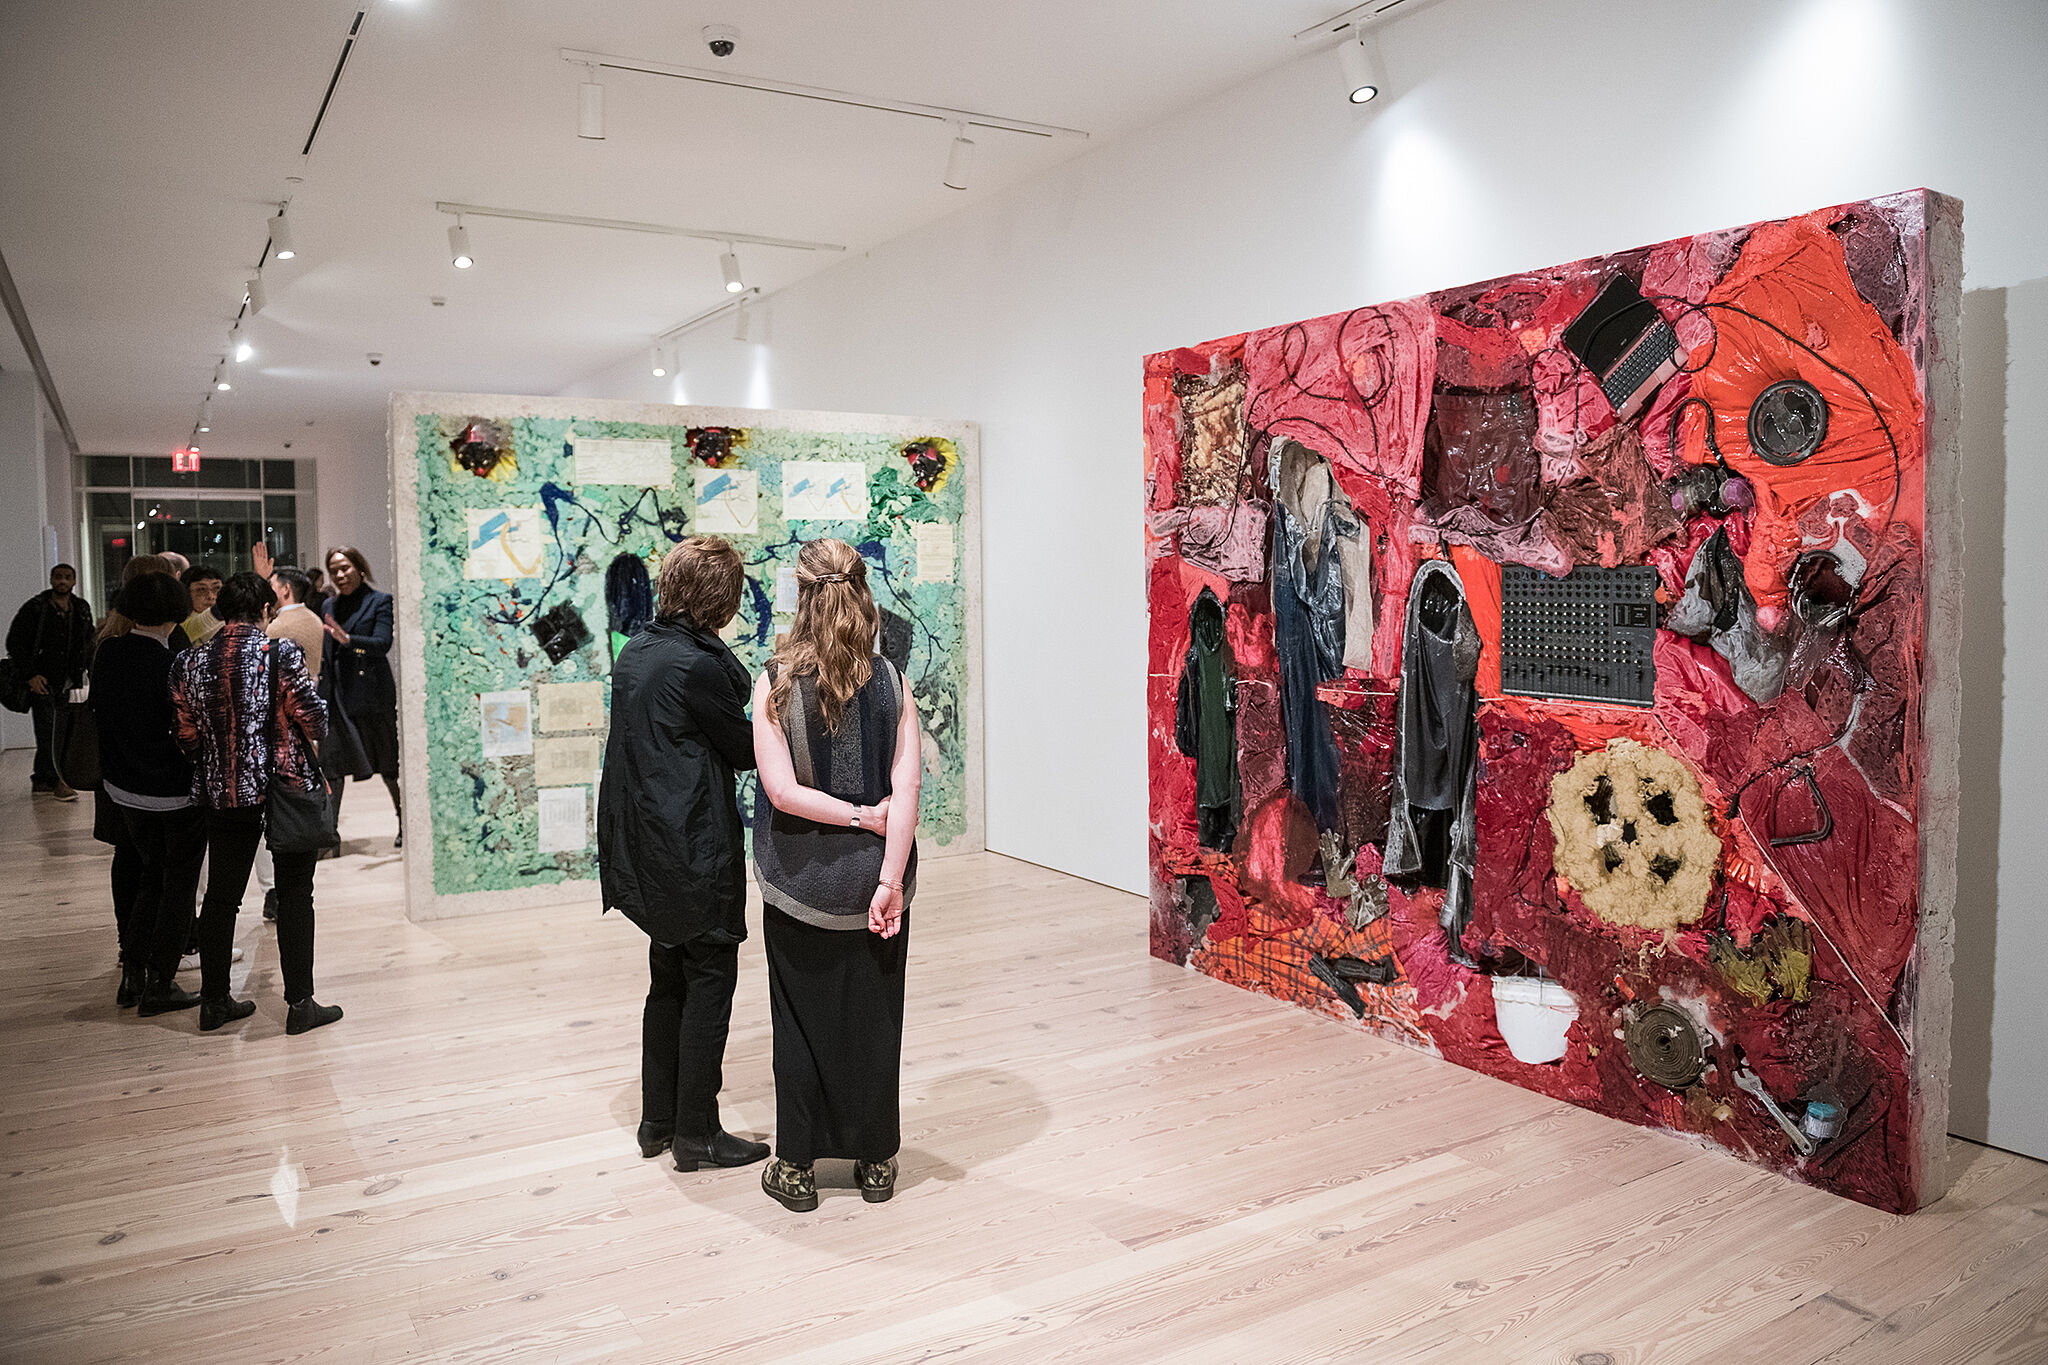 Visitors look at two large-scale artworks by Kevin Beasley